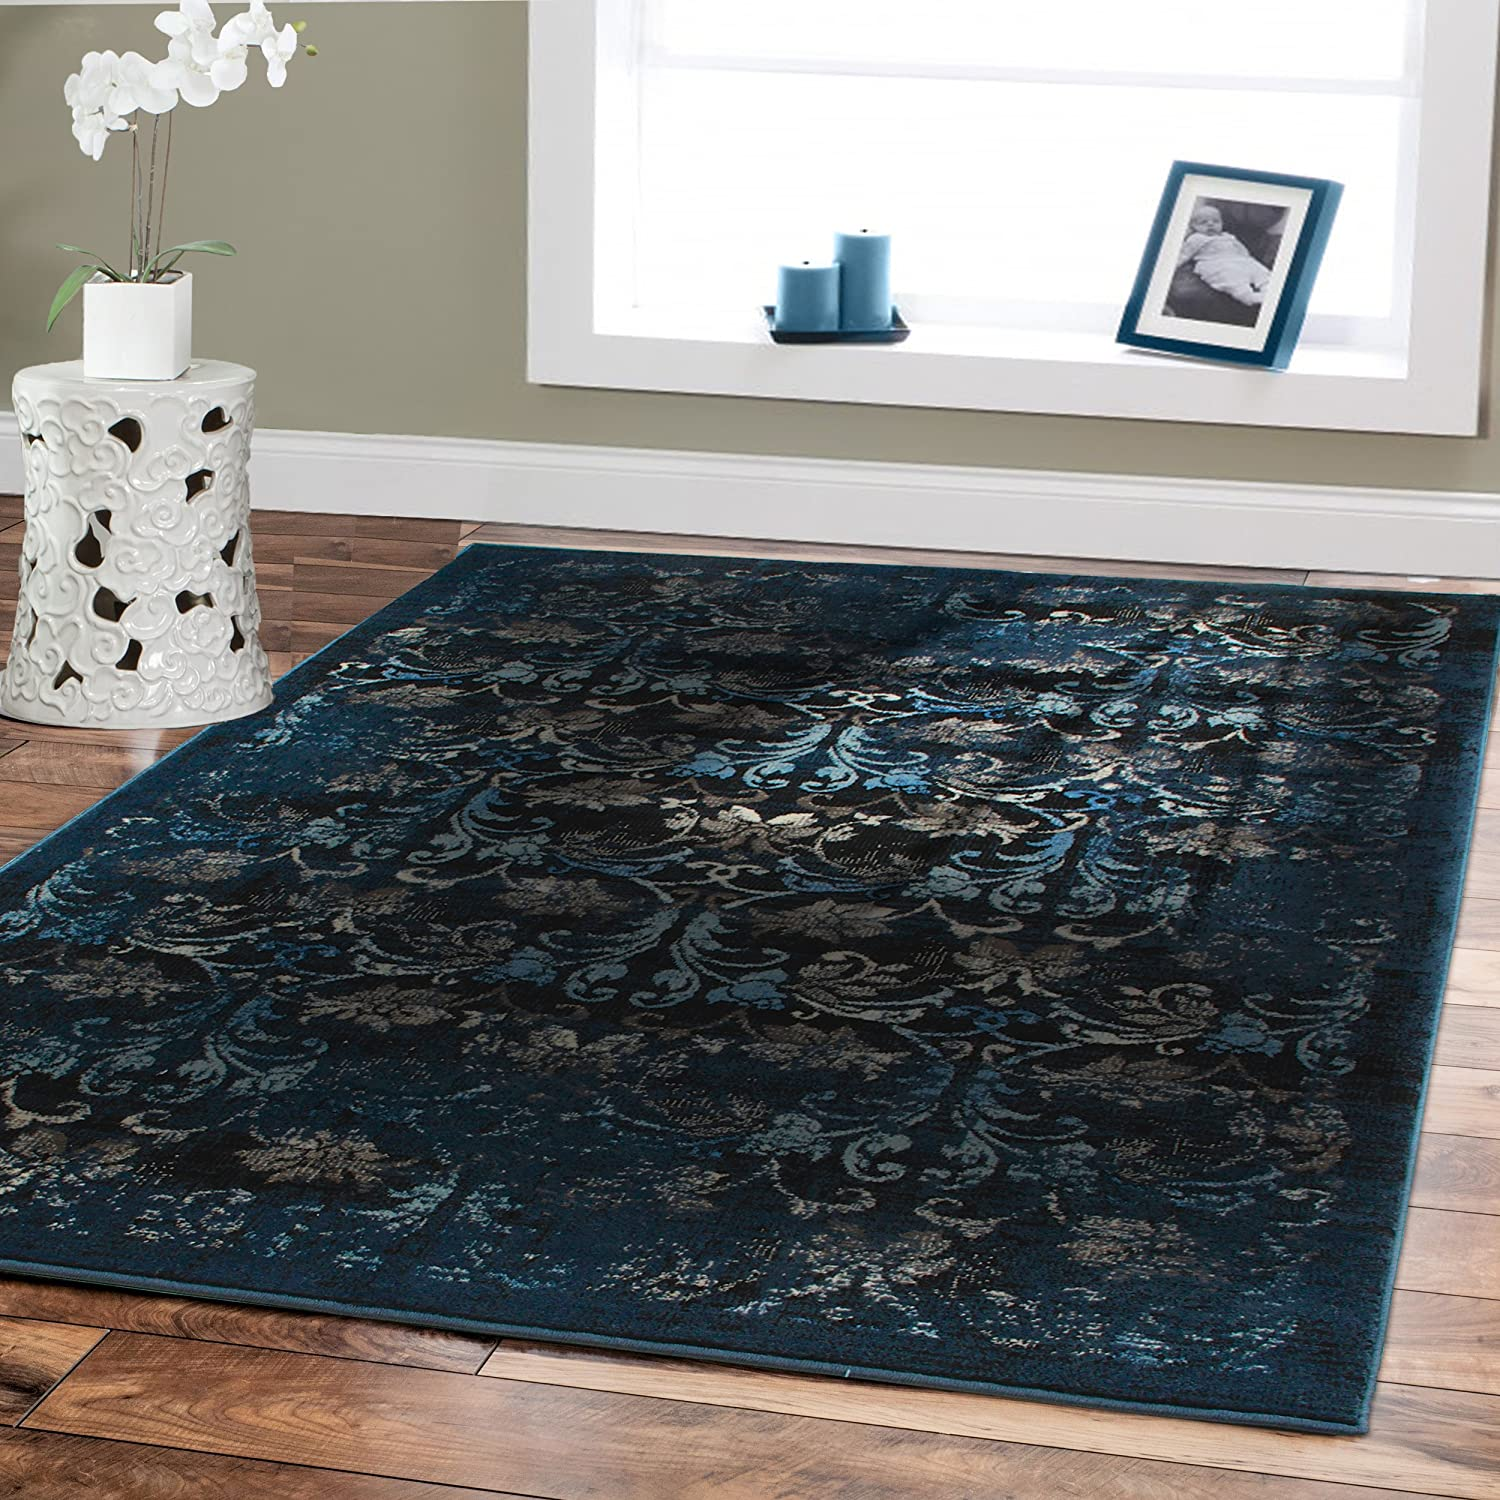 Strange Premium Large Rugs 8X11 Modern Rugs For Brown Sofa Blue Rugs Navy Beige Brown Black Navy Floral Carpet Rugs Fashion 8X10 Contemporary Rugs Blue Grey Download Free Architecture Designs Intelgarnamadebymaigaardcom